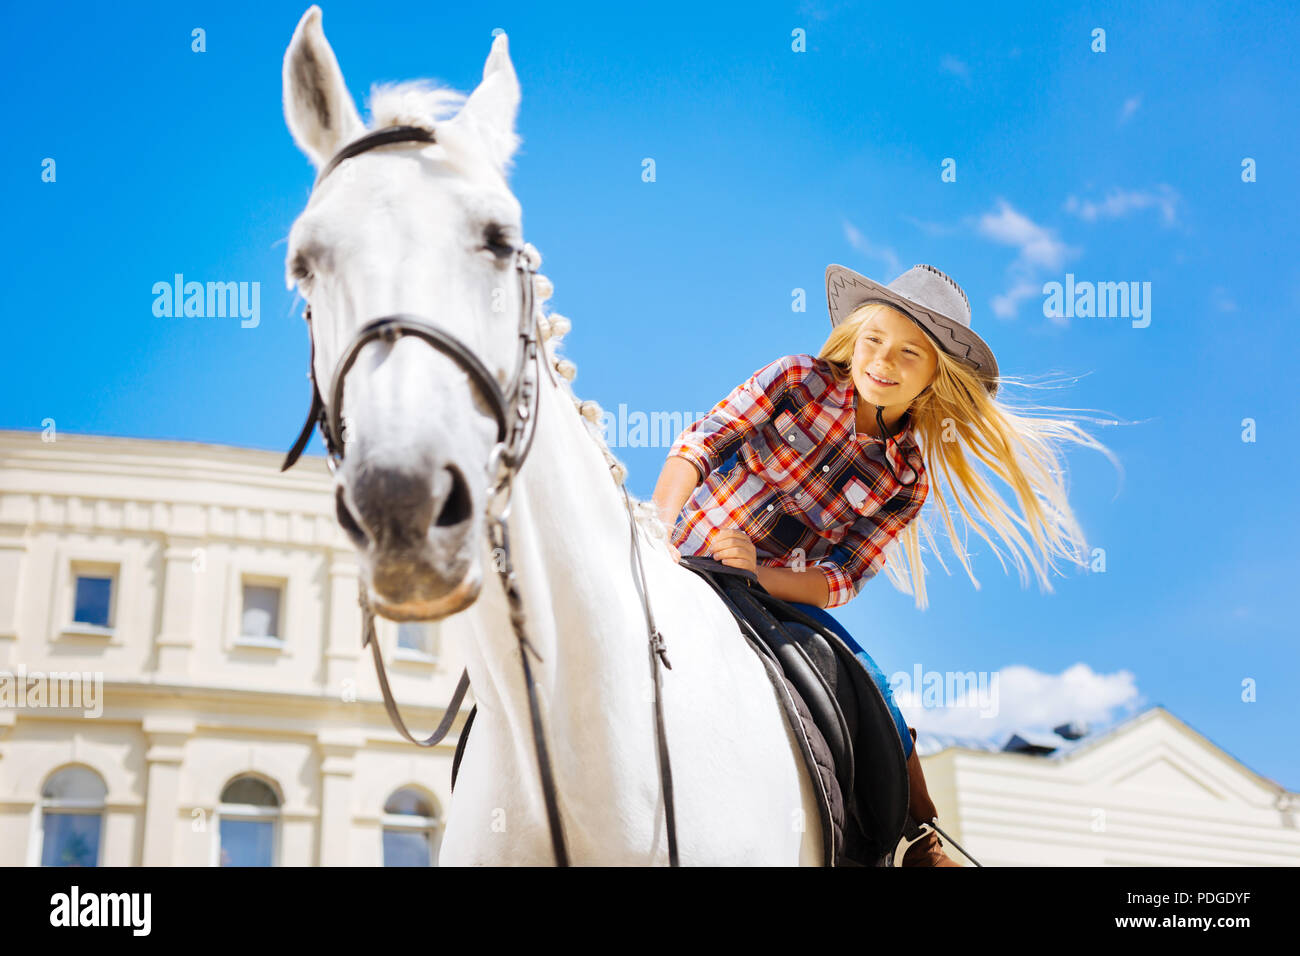 Beaming schoolgirl enjoying her horse riding lesson - Stock Image